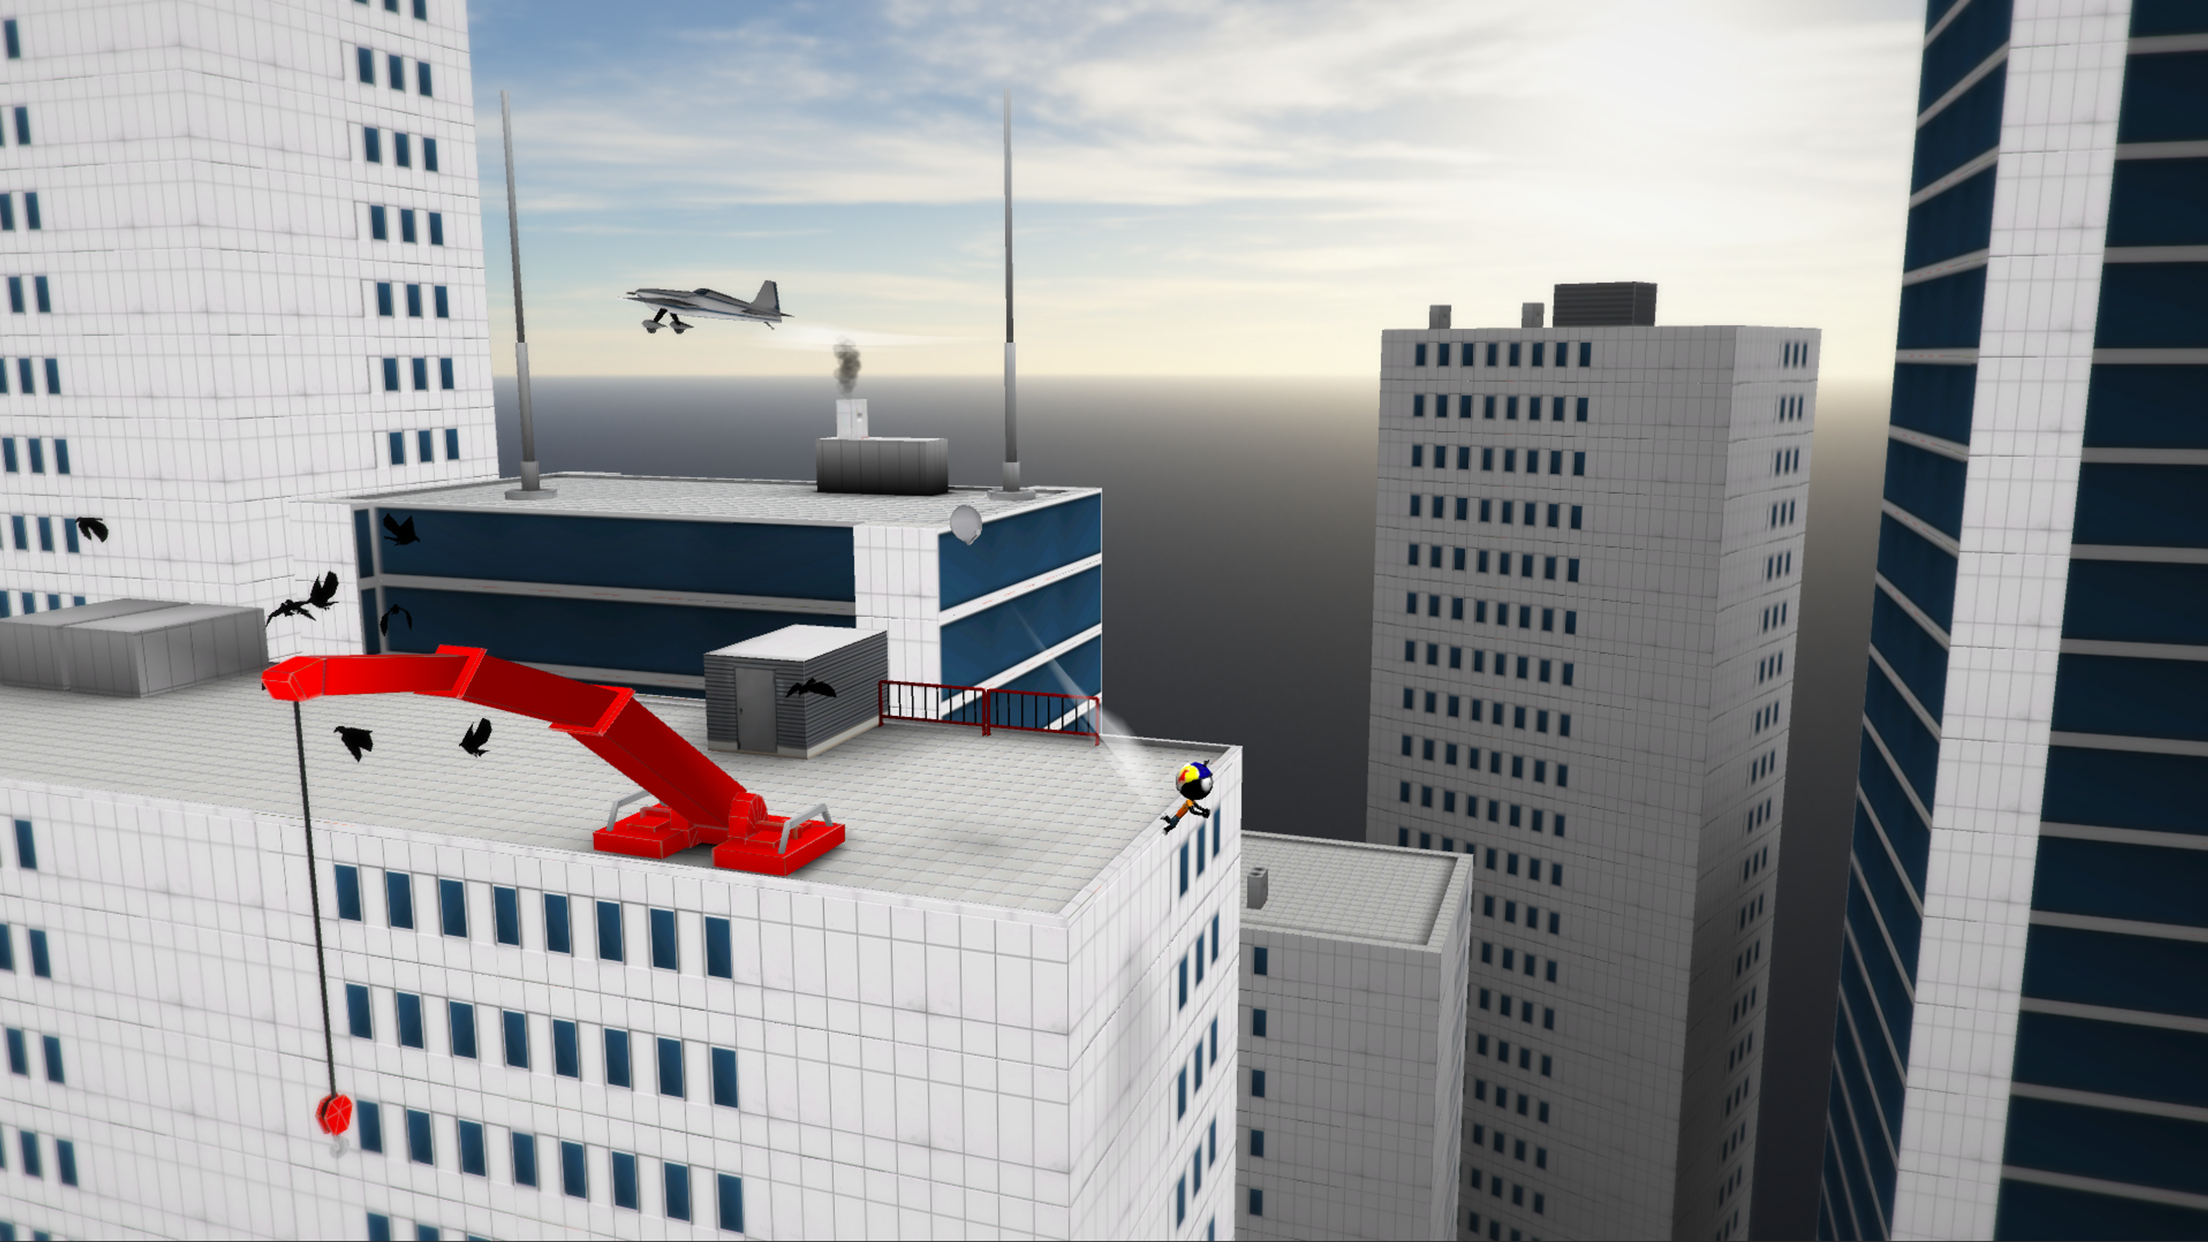 We spoke to Djinnworks to find out about their latest title Stickman Base Jumper 2